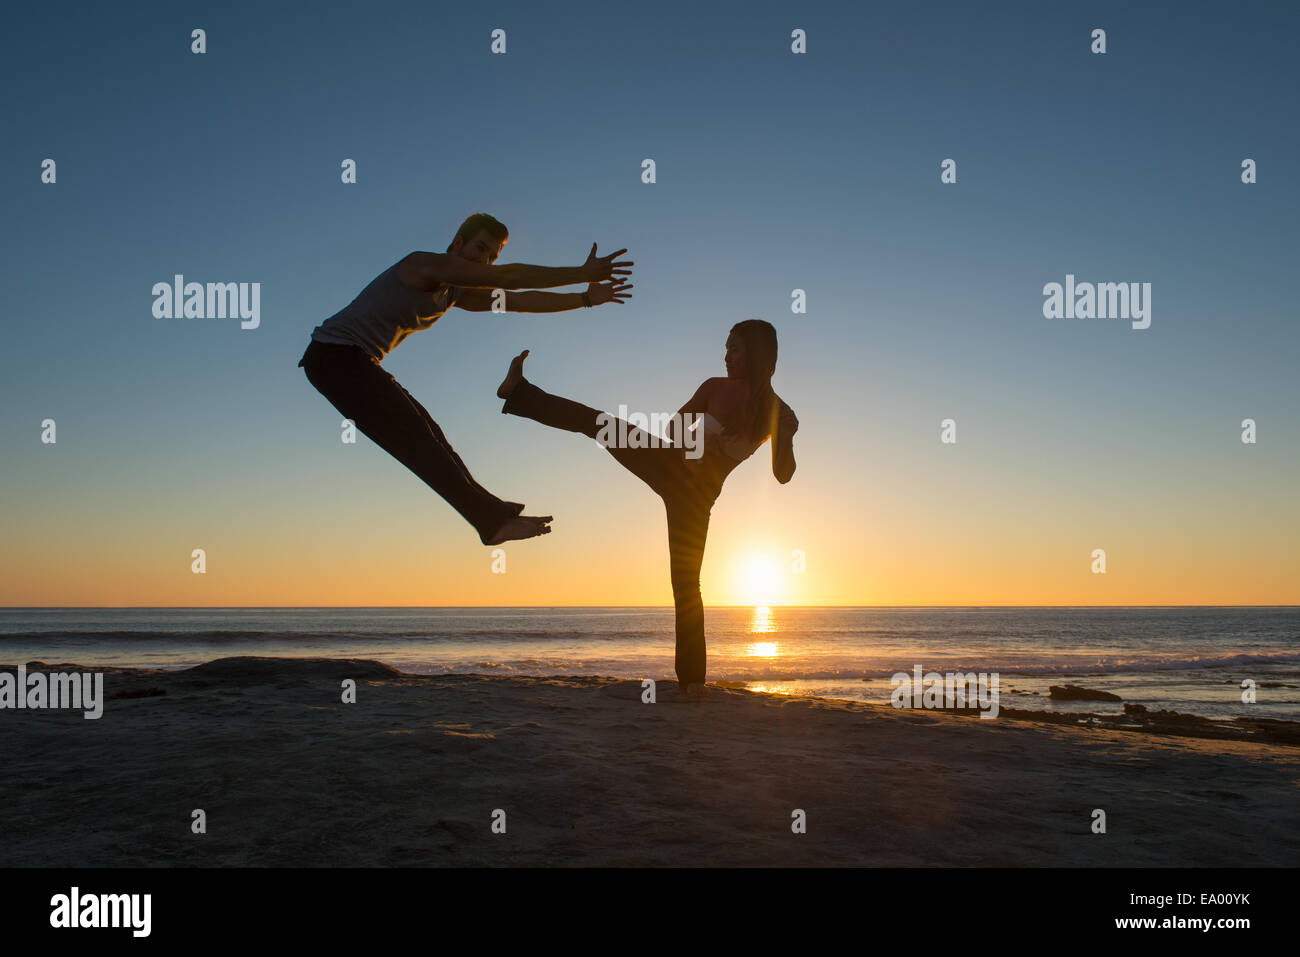 People in jumping and kicking poses on Windansea beach, La Jolla, California - Stock Image